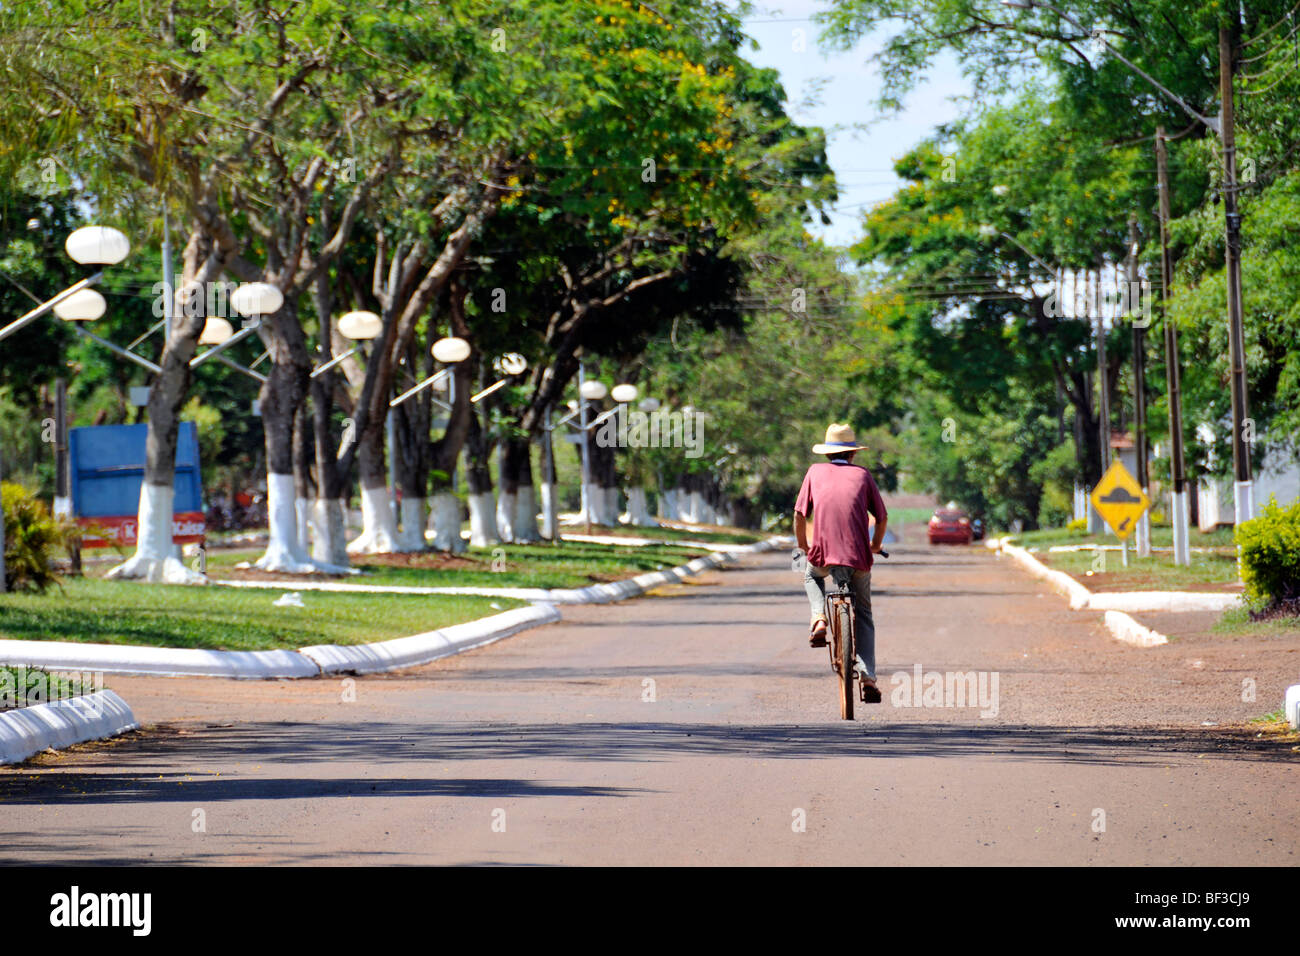 Brazilian Cyclist Stock Photos Images Alamy Full Bike Pato Fx 2 Black Lone Bicyclist In Street Bragado Parana Brazil Image